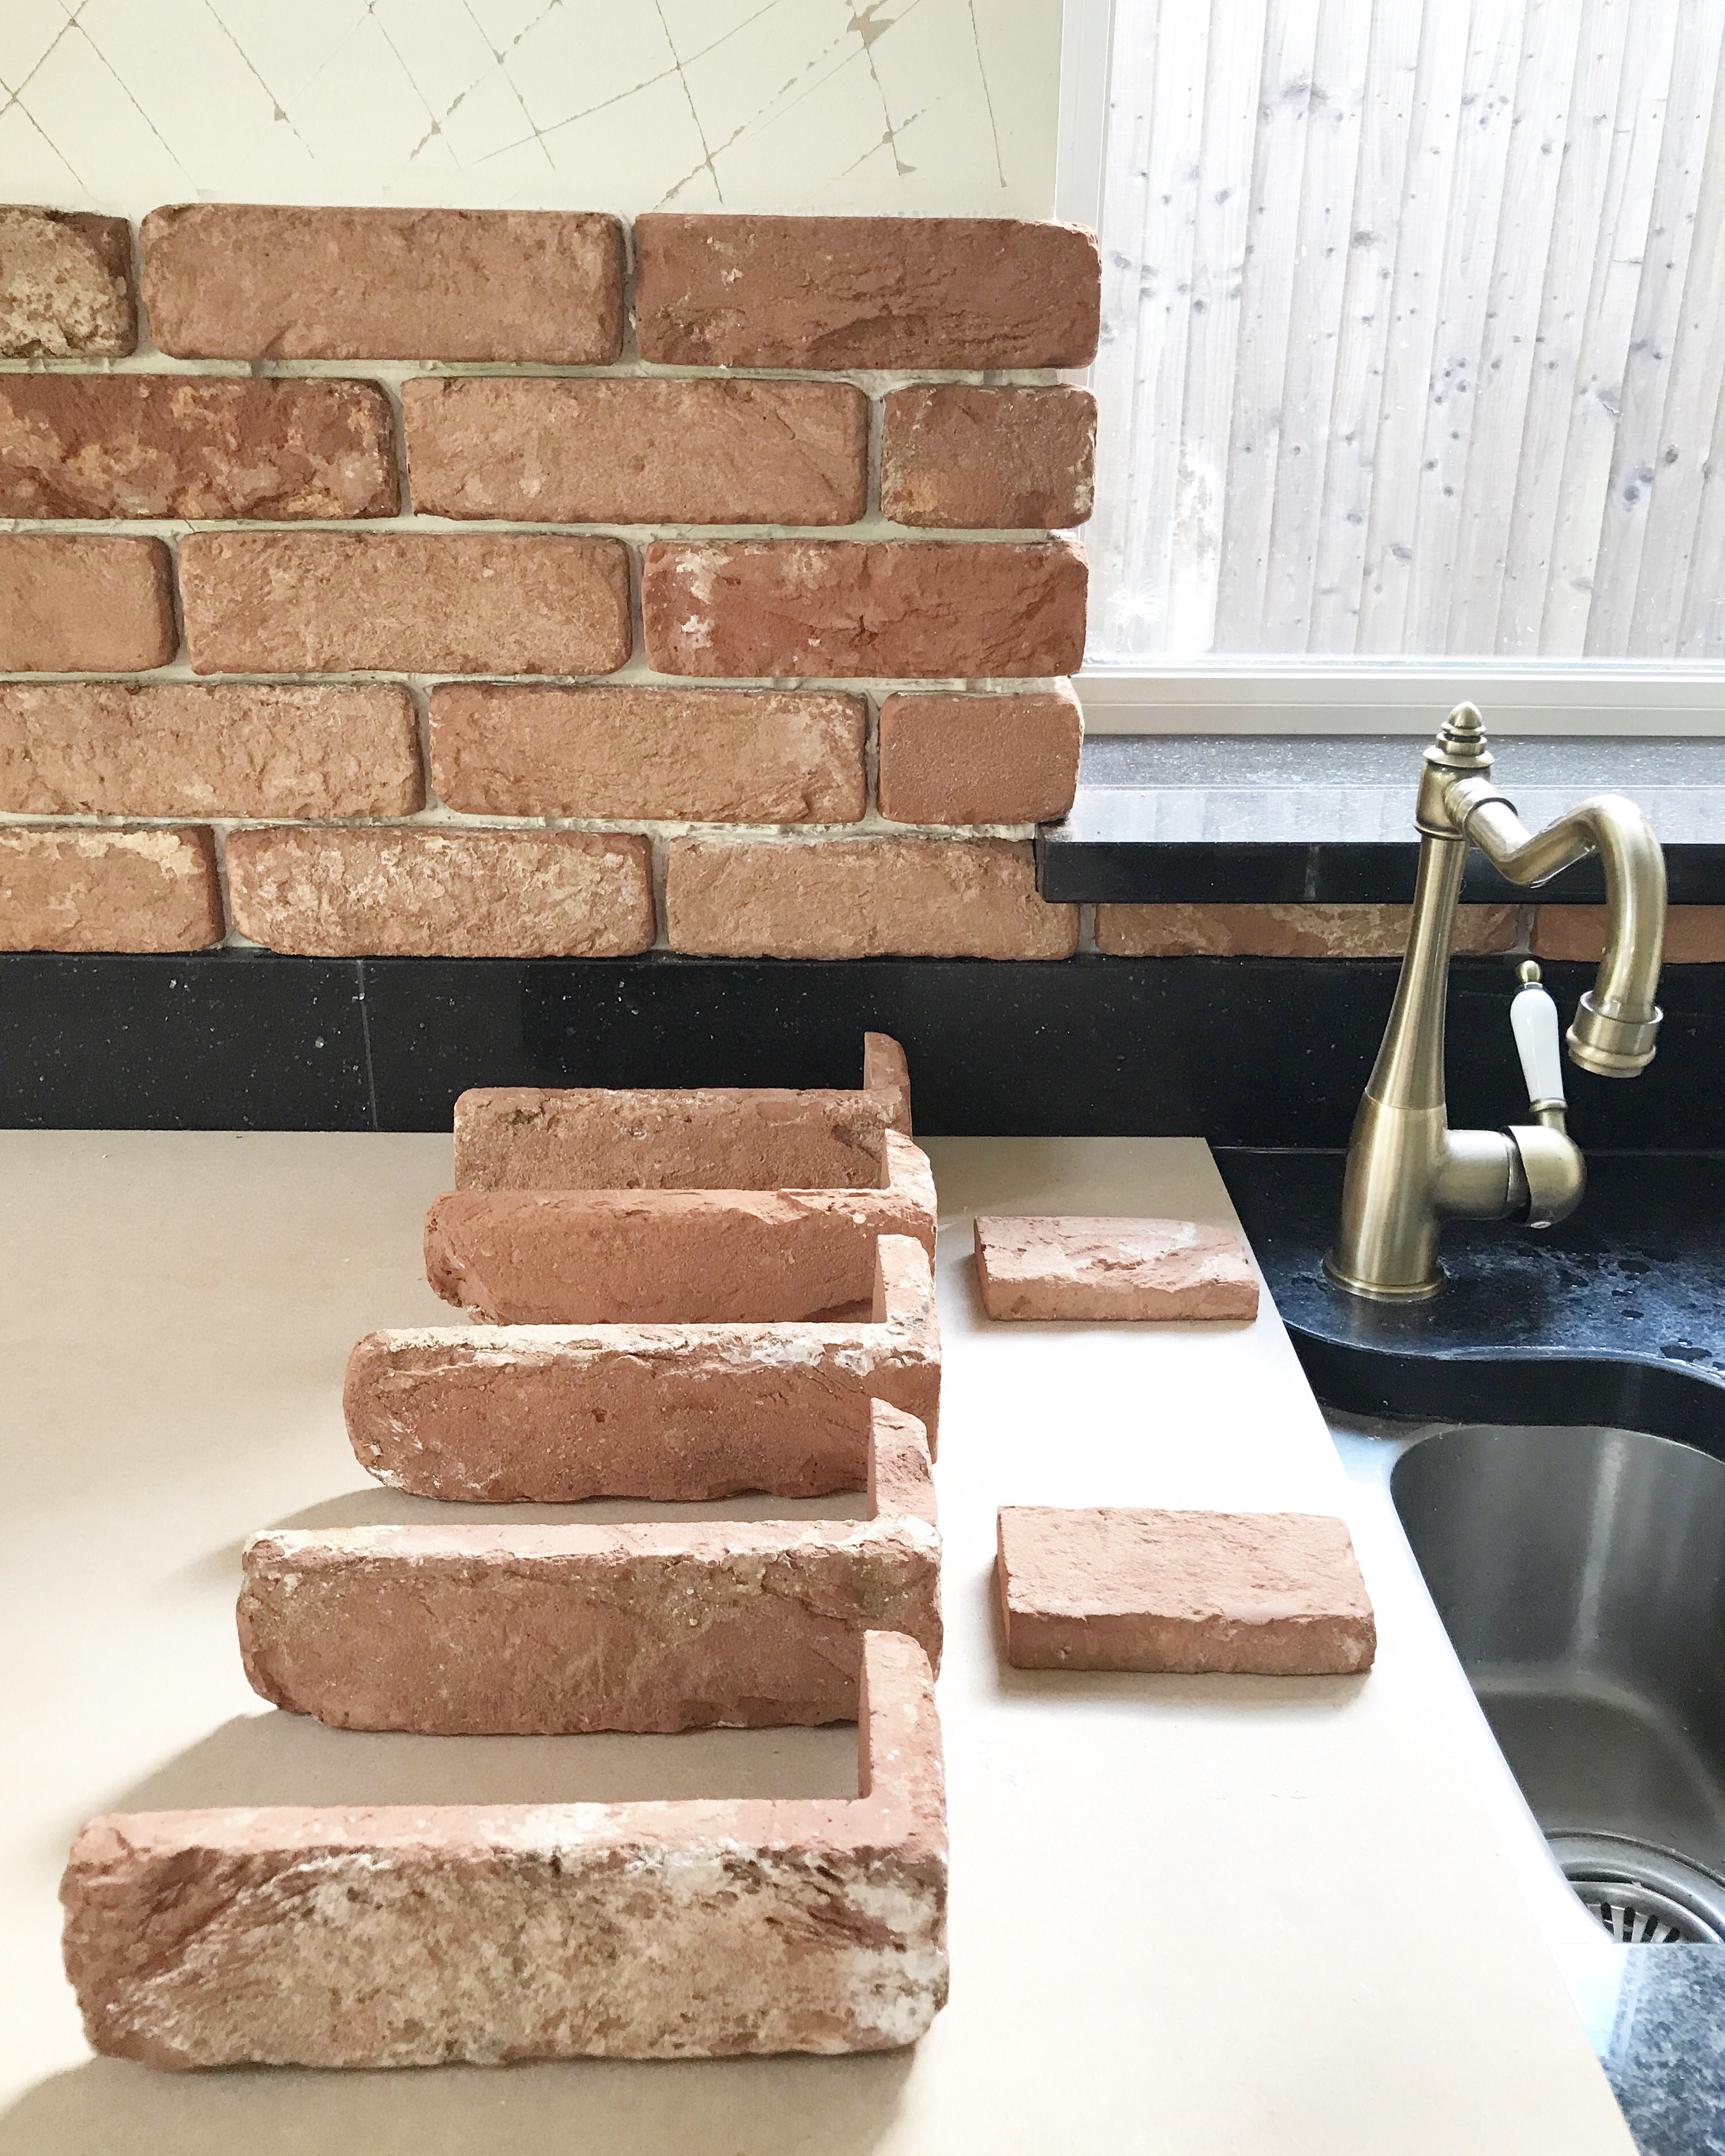 We Also Have A Medium Sized Window On Our Kitchen Wall, That Would Be  Included In The Brick Wall, With A Lot Of Corners And Edges That I Was  Initially ...